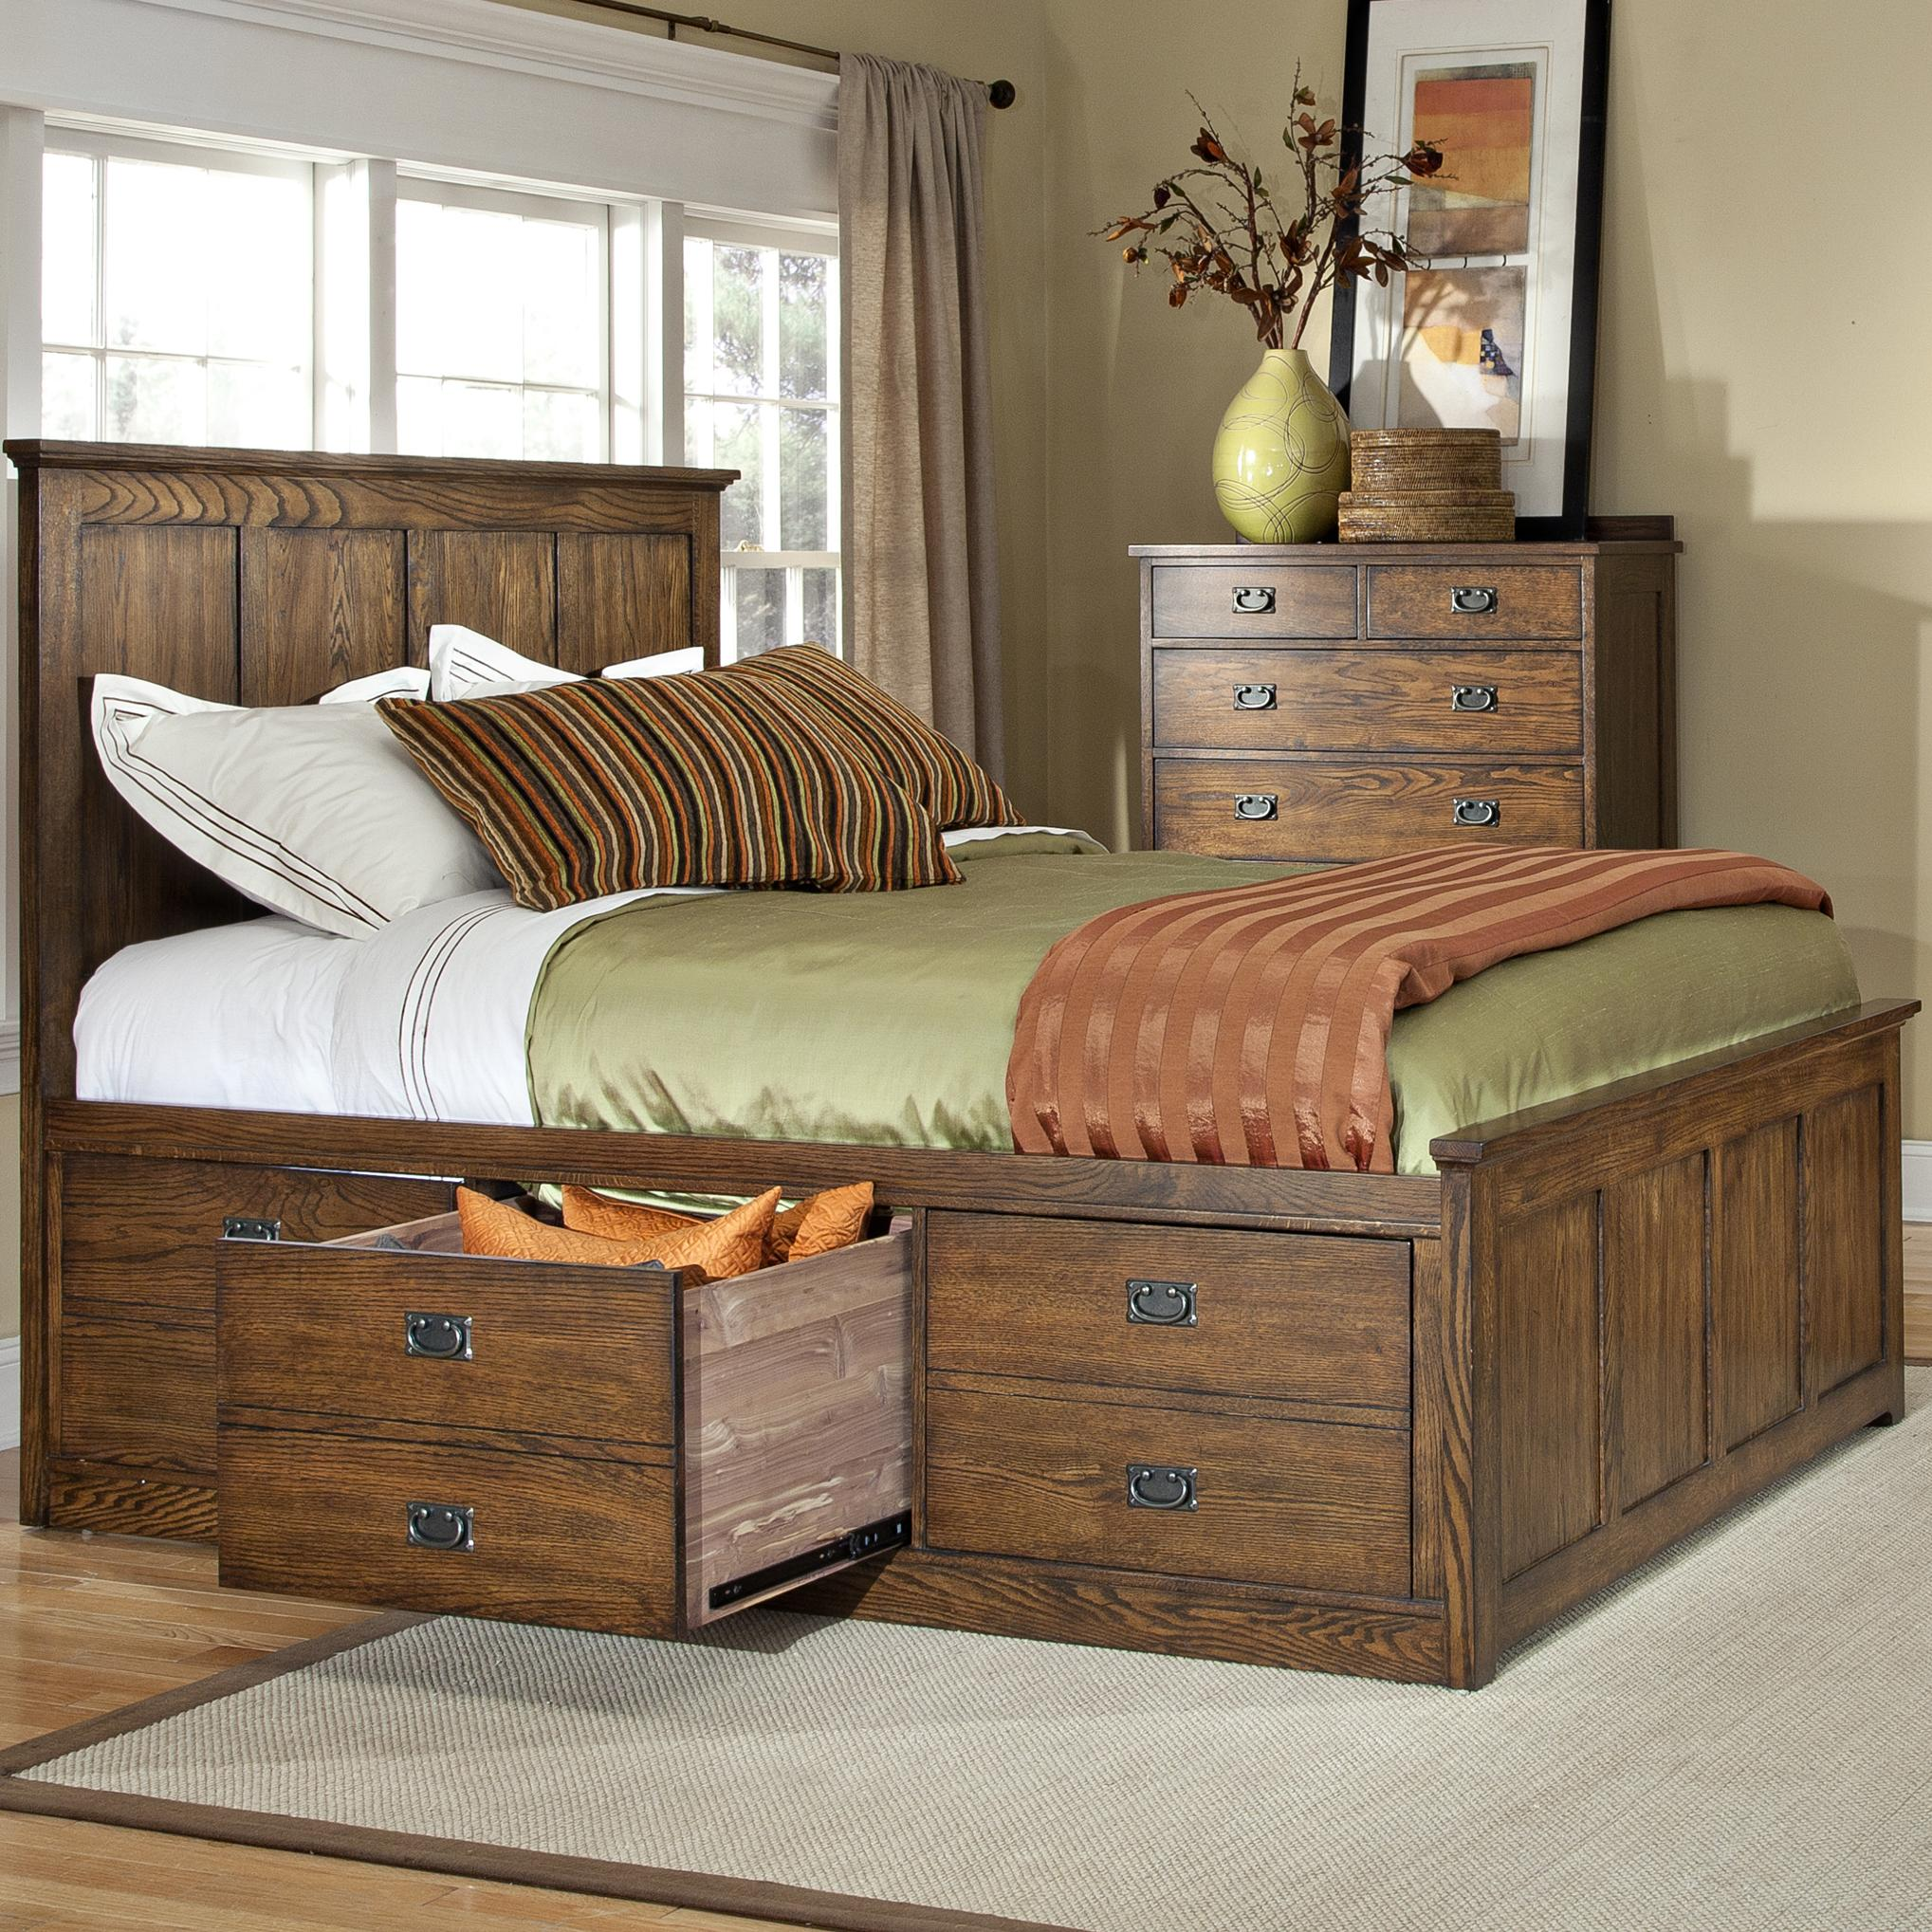 Oak Park California King Bed with 6 Storage Drawers by VFM Signature at Virginia Furniture Market